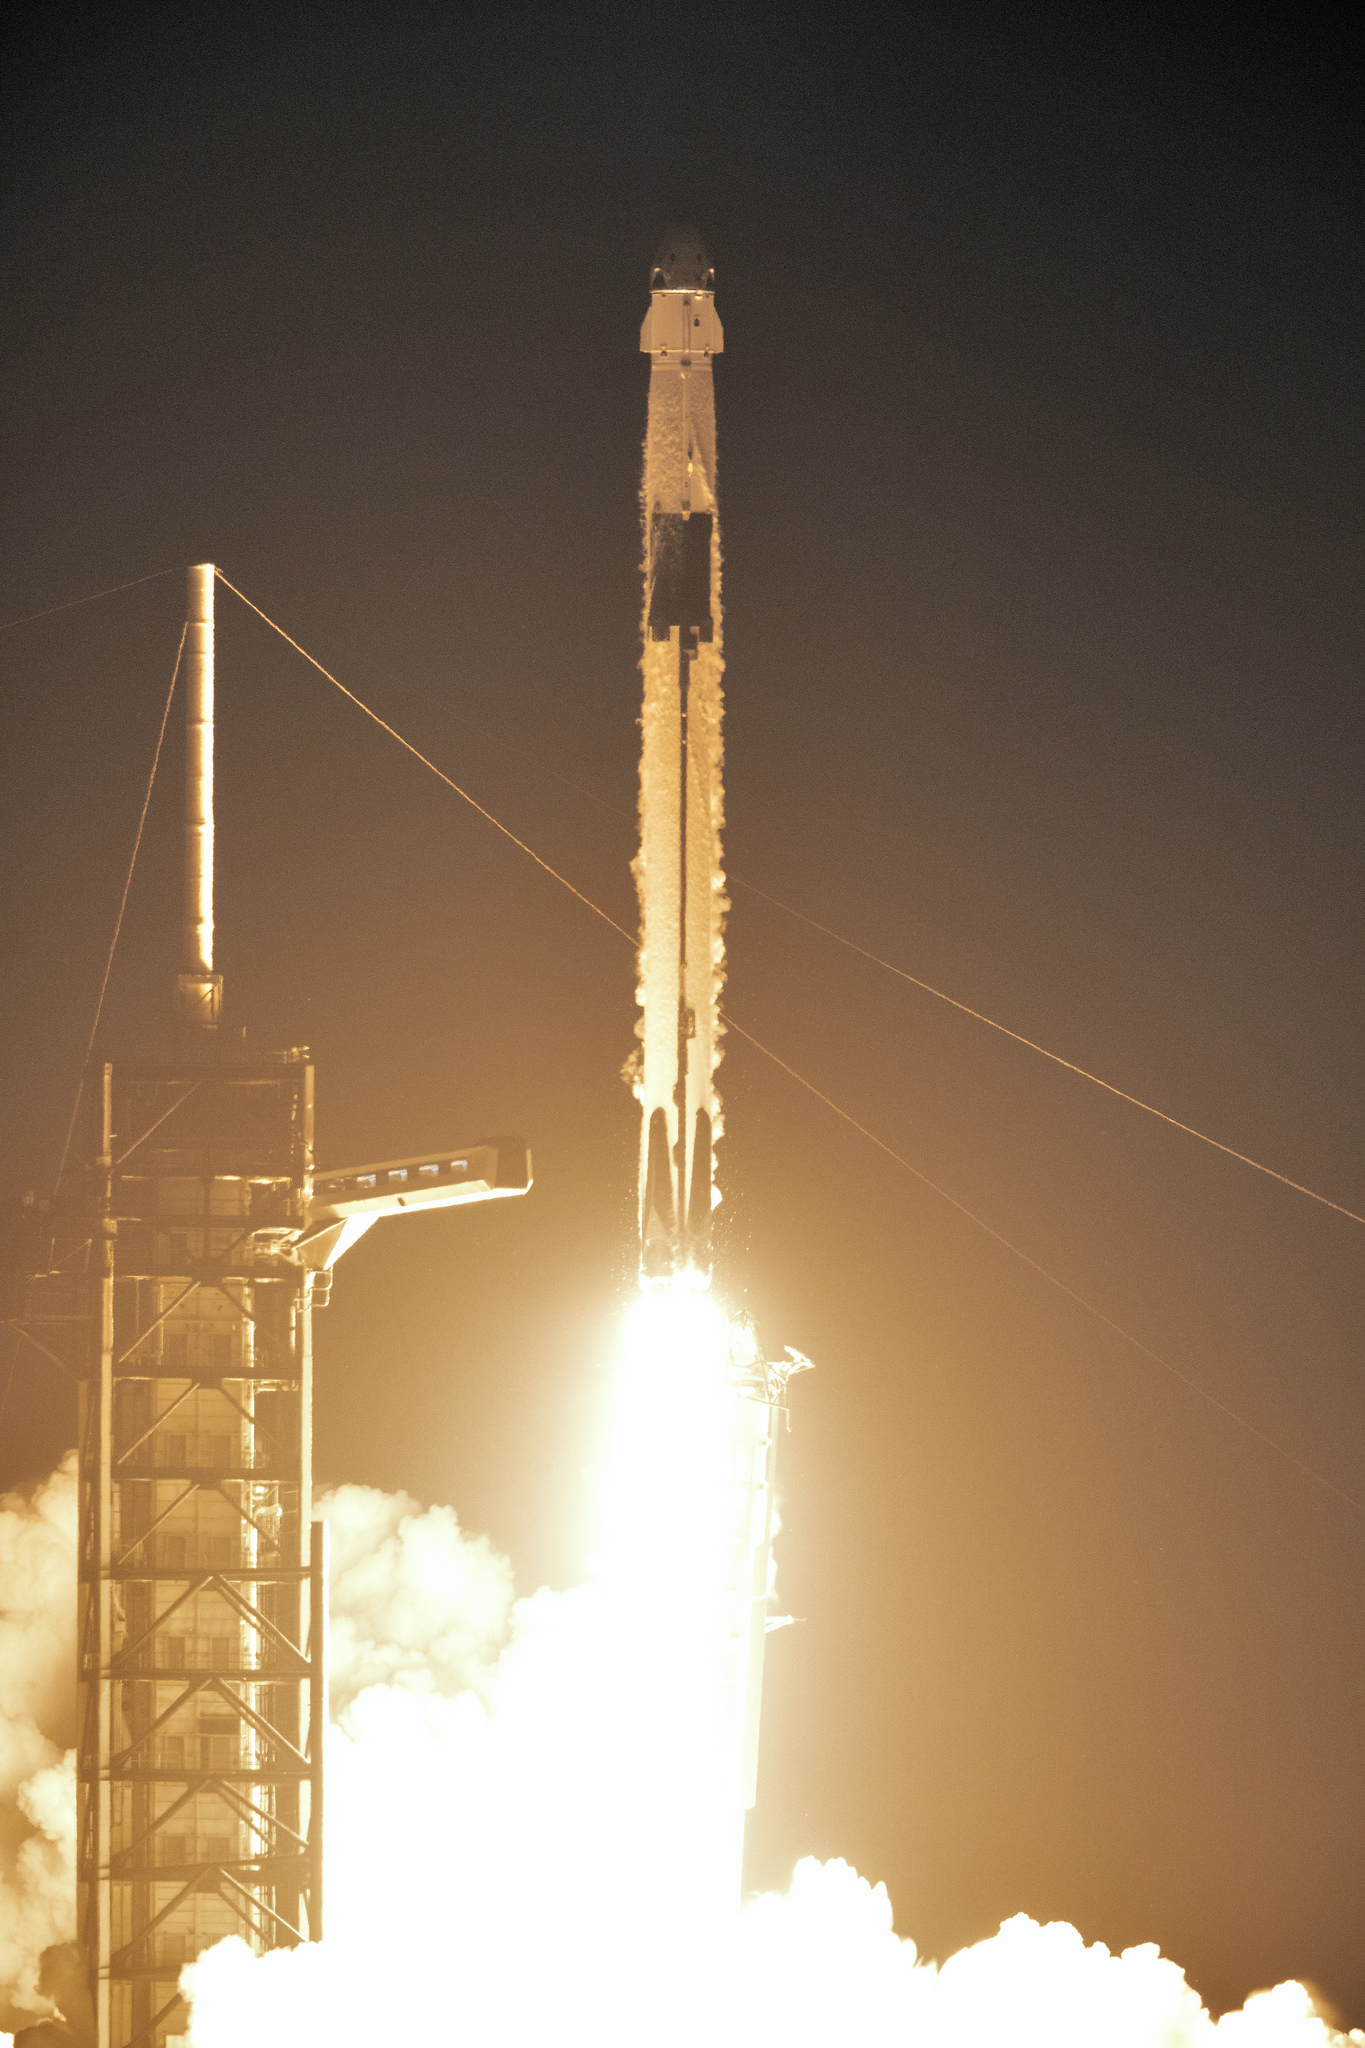 Falcon 9 Block 5 lifts off from LC-39A carrying Crew Dragon to orbit. Image credit: NASA